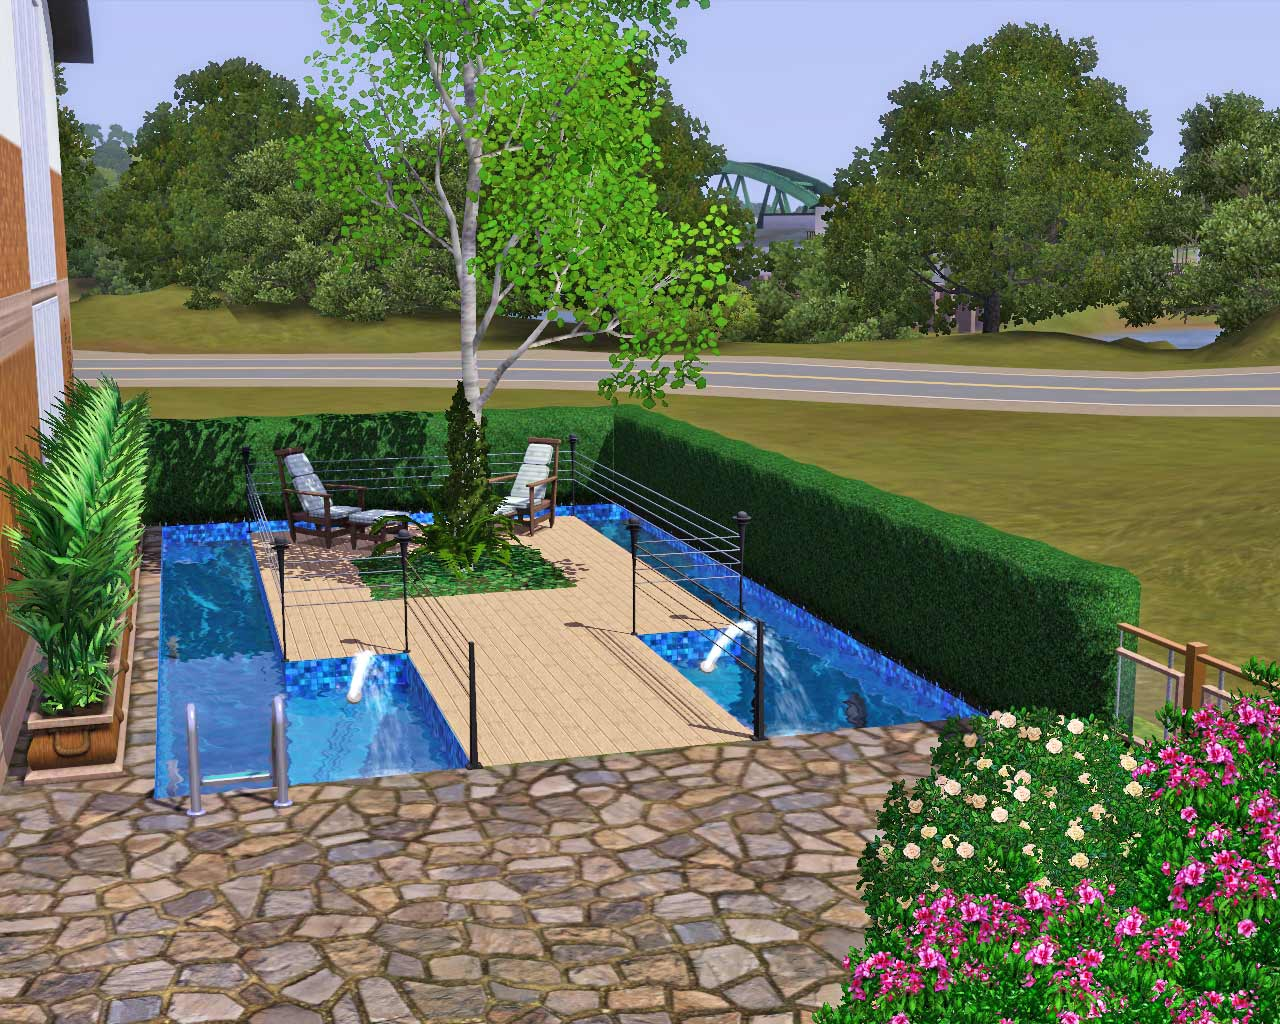 Mod The Sims Ledomus Starter Home Plan 3 No Cc The Home Plans